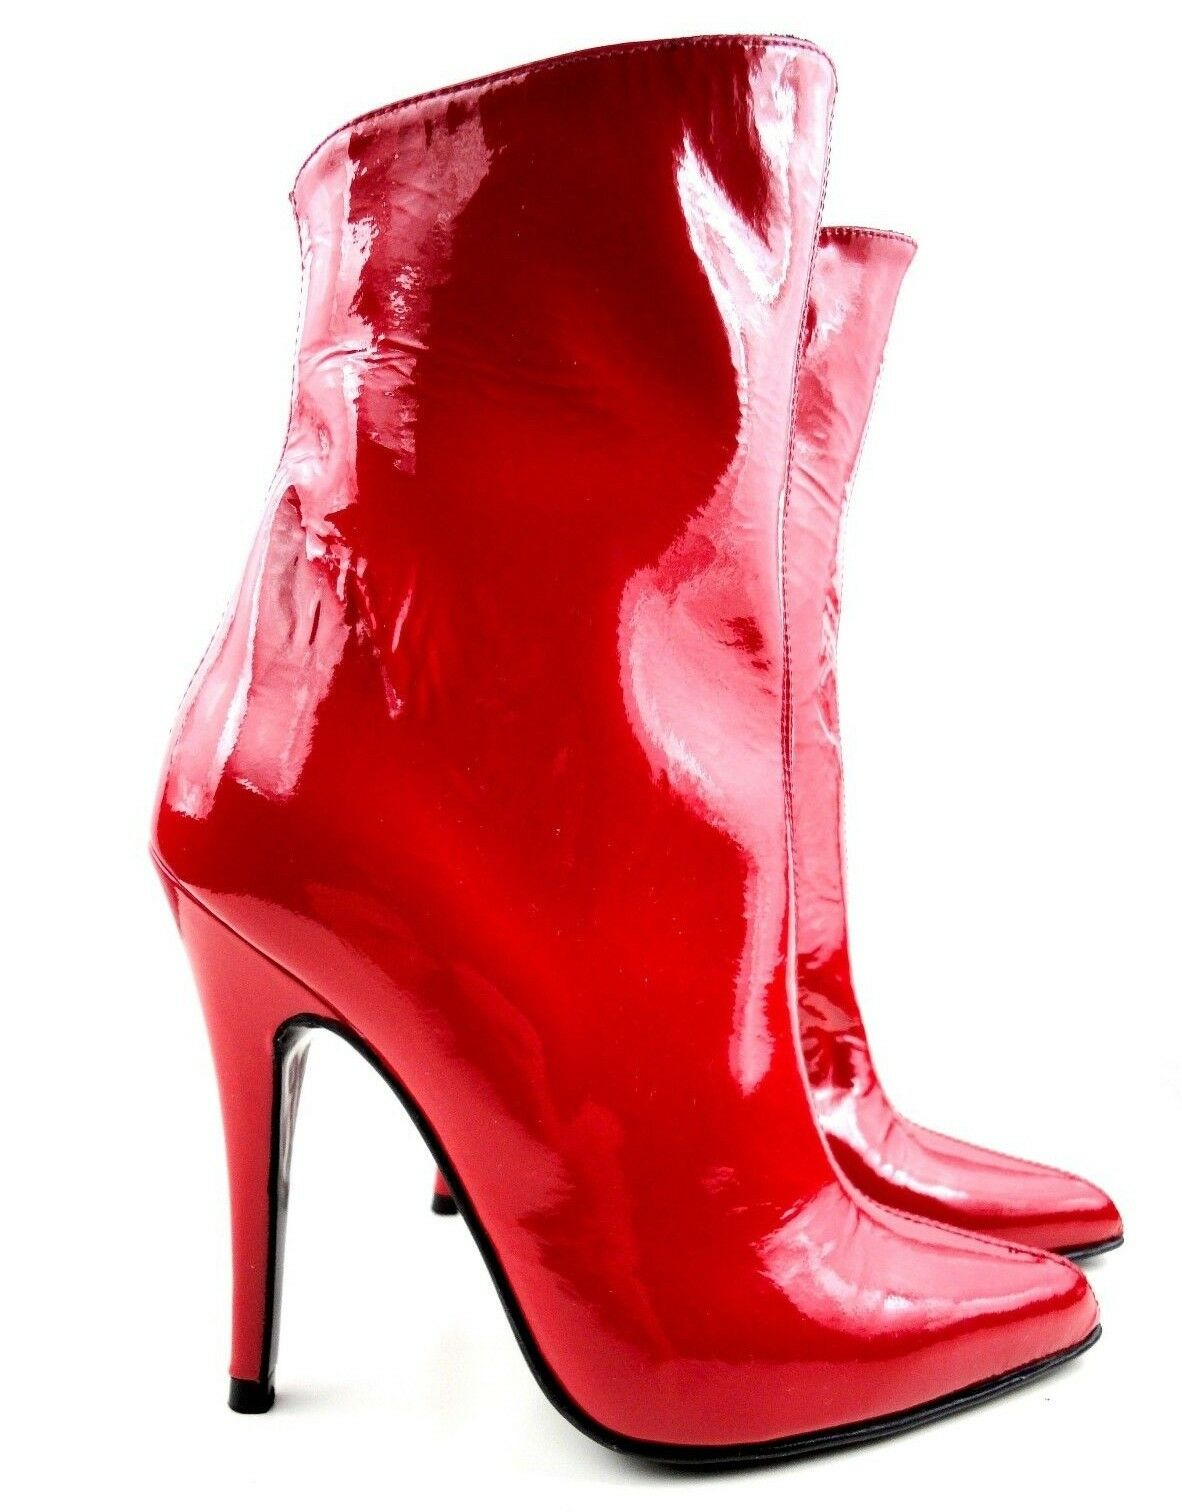 GIOHEL ANKLE CUSTOM BOOTIES BOOTS STIEFEL STIVALI PATENT LEATHER ROSSO RED 40